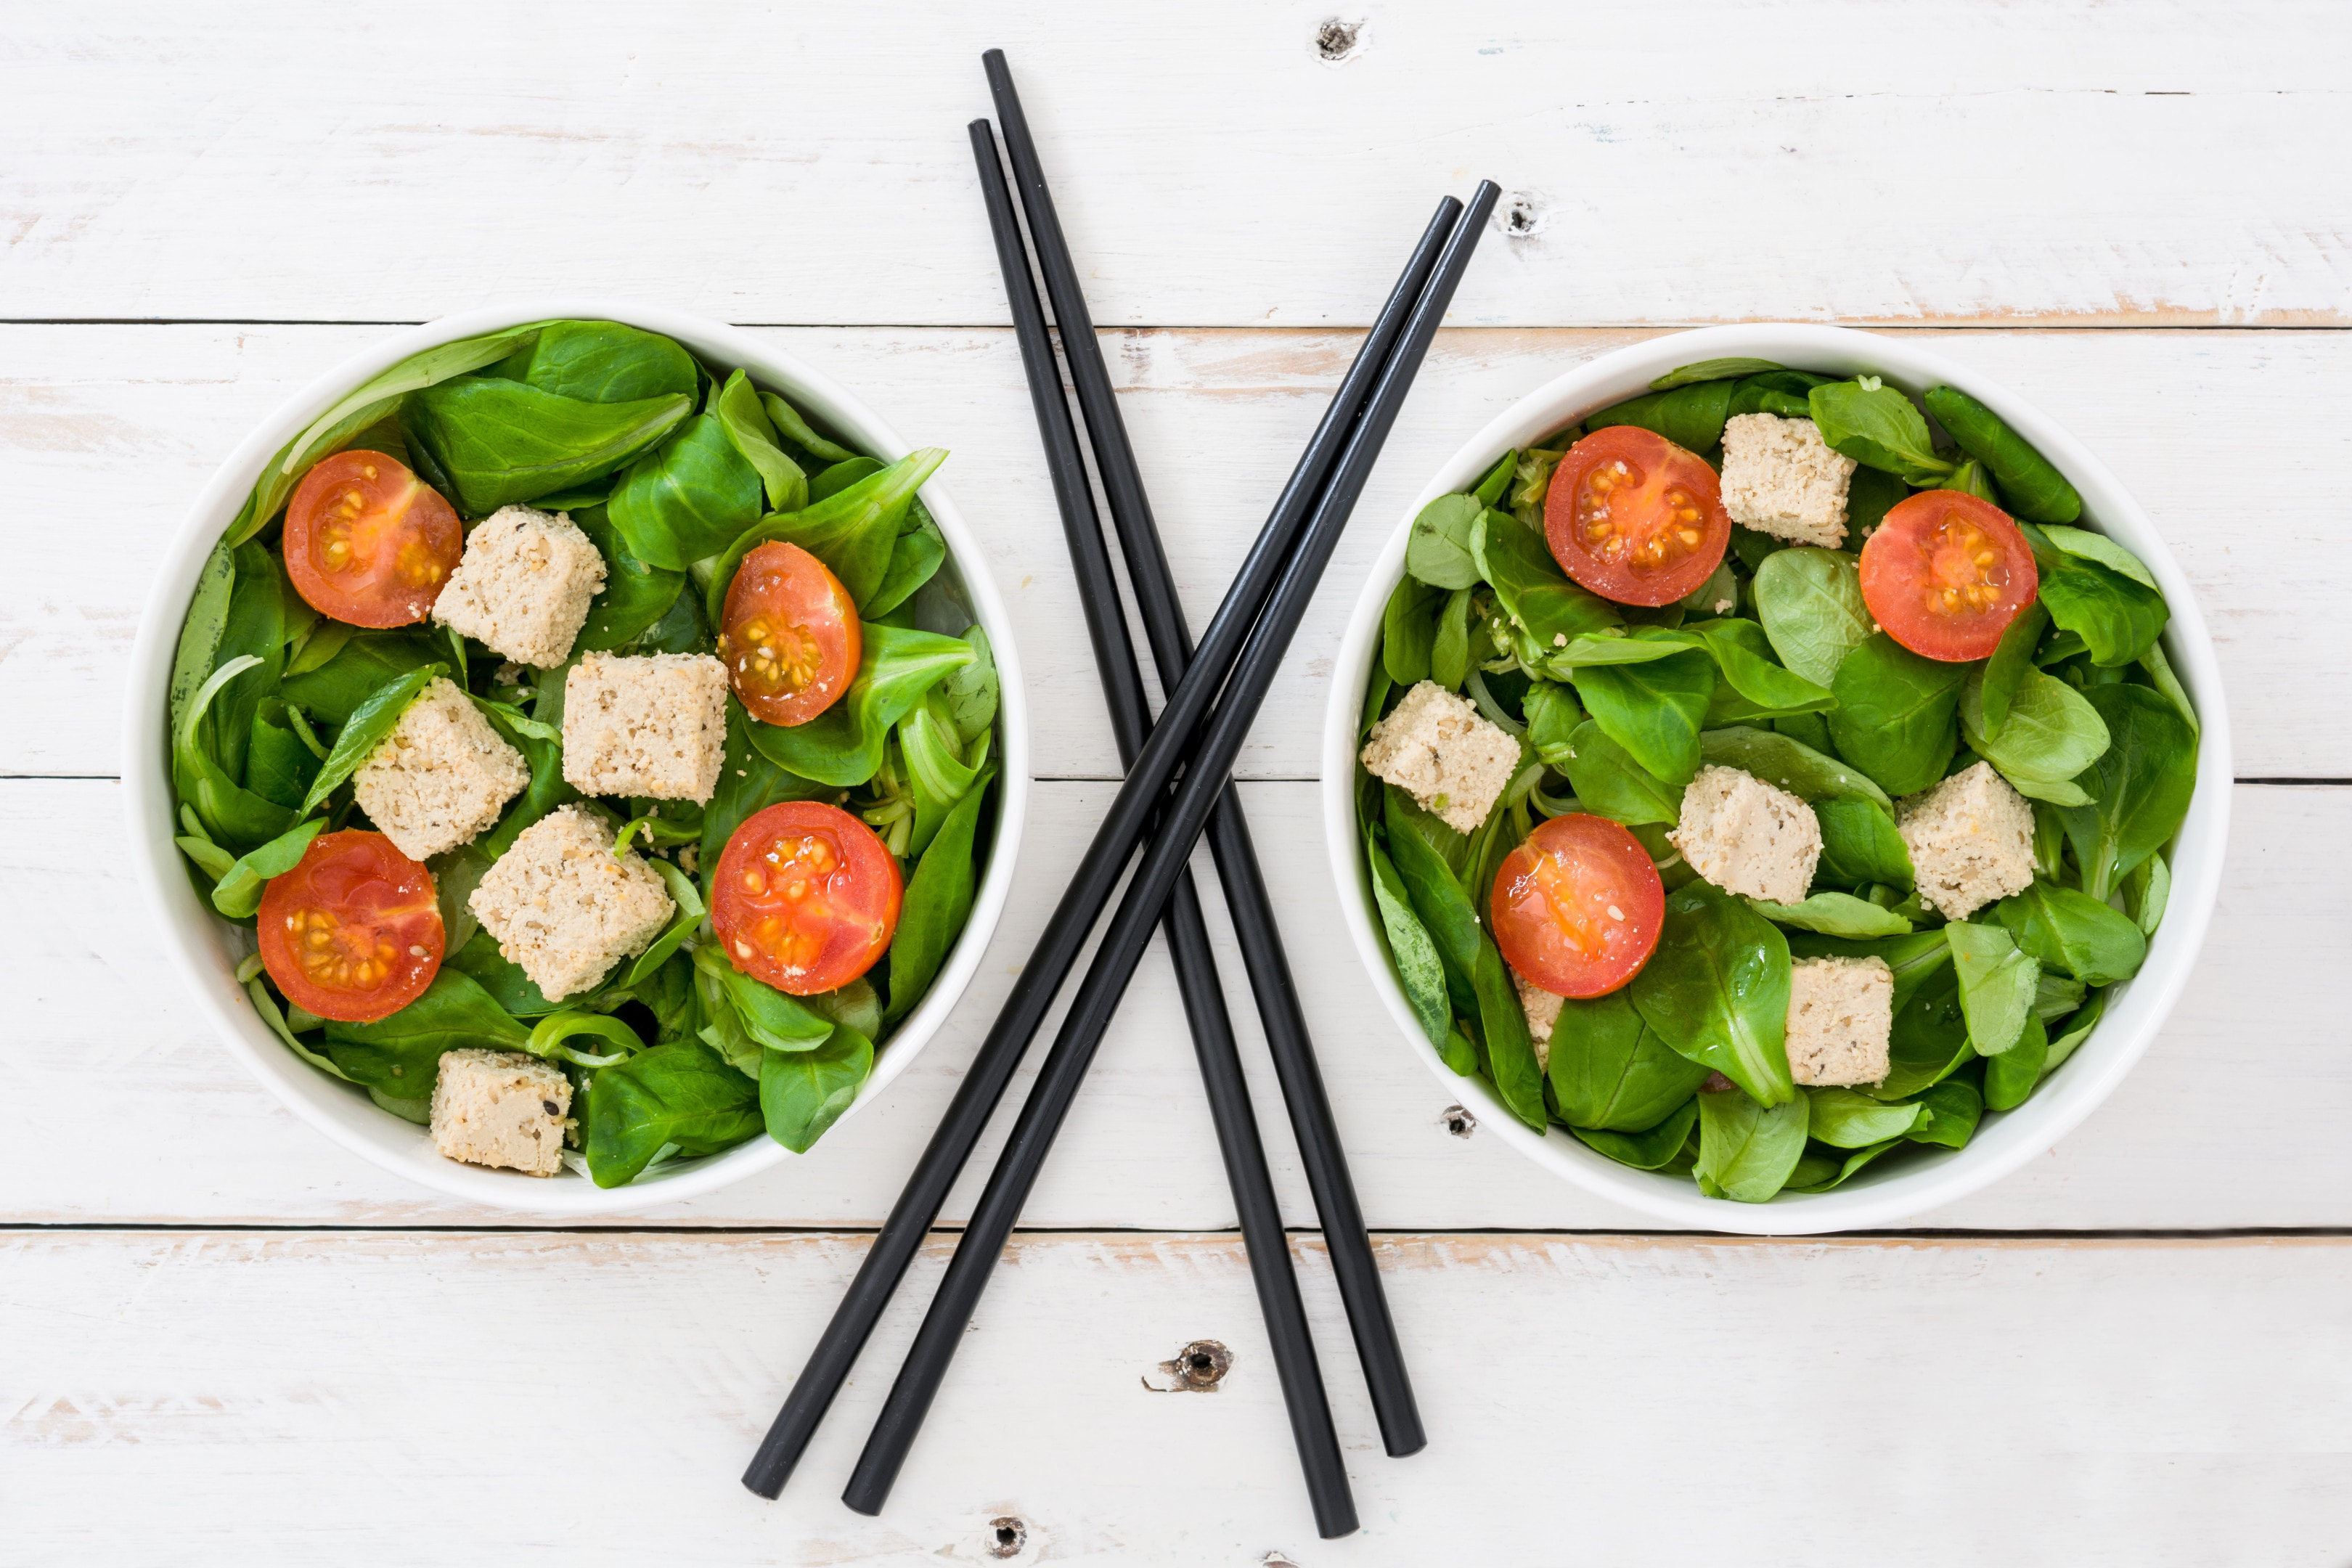 Tofu salad with tomatoes and spinach